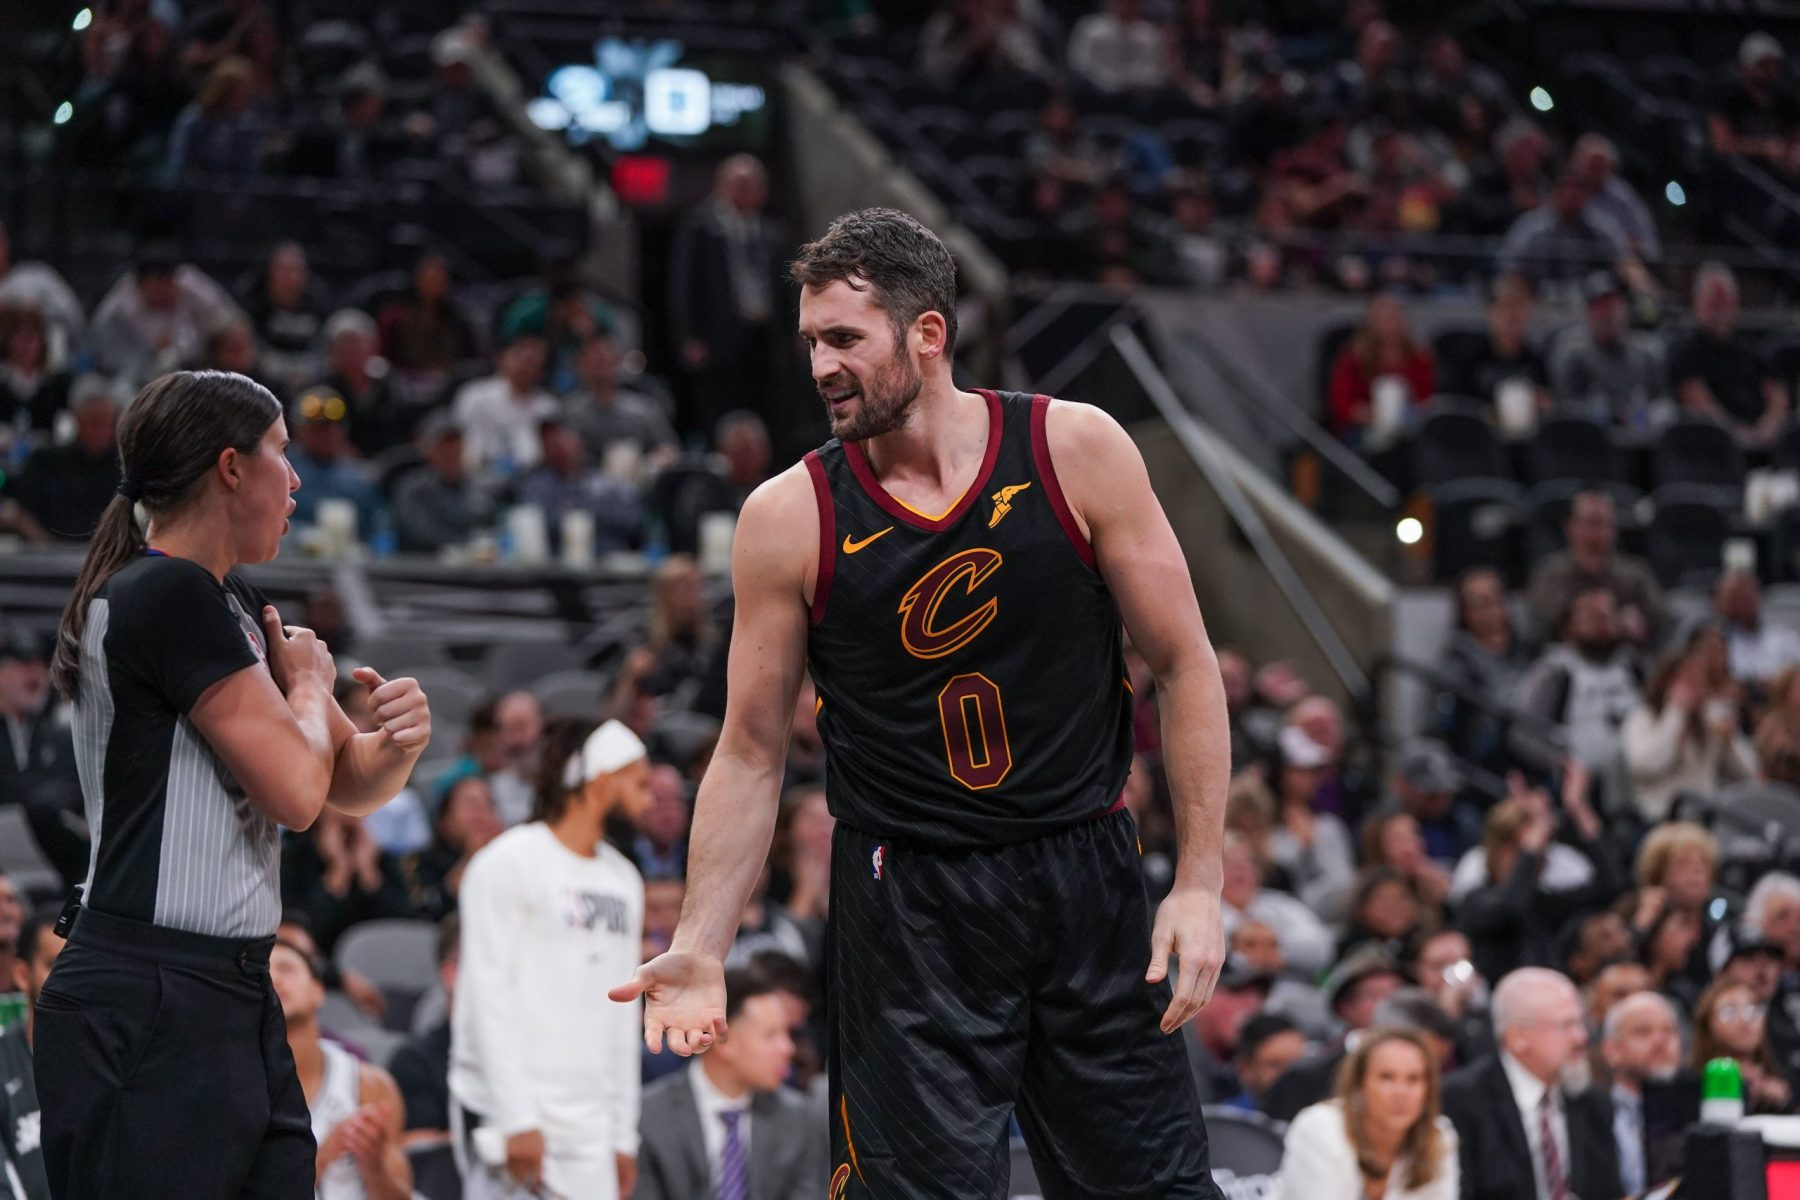 Kevin Love says he 'loves' Cavaliers teammates after on-court outburst